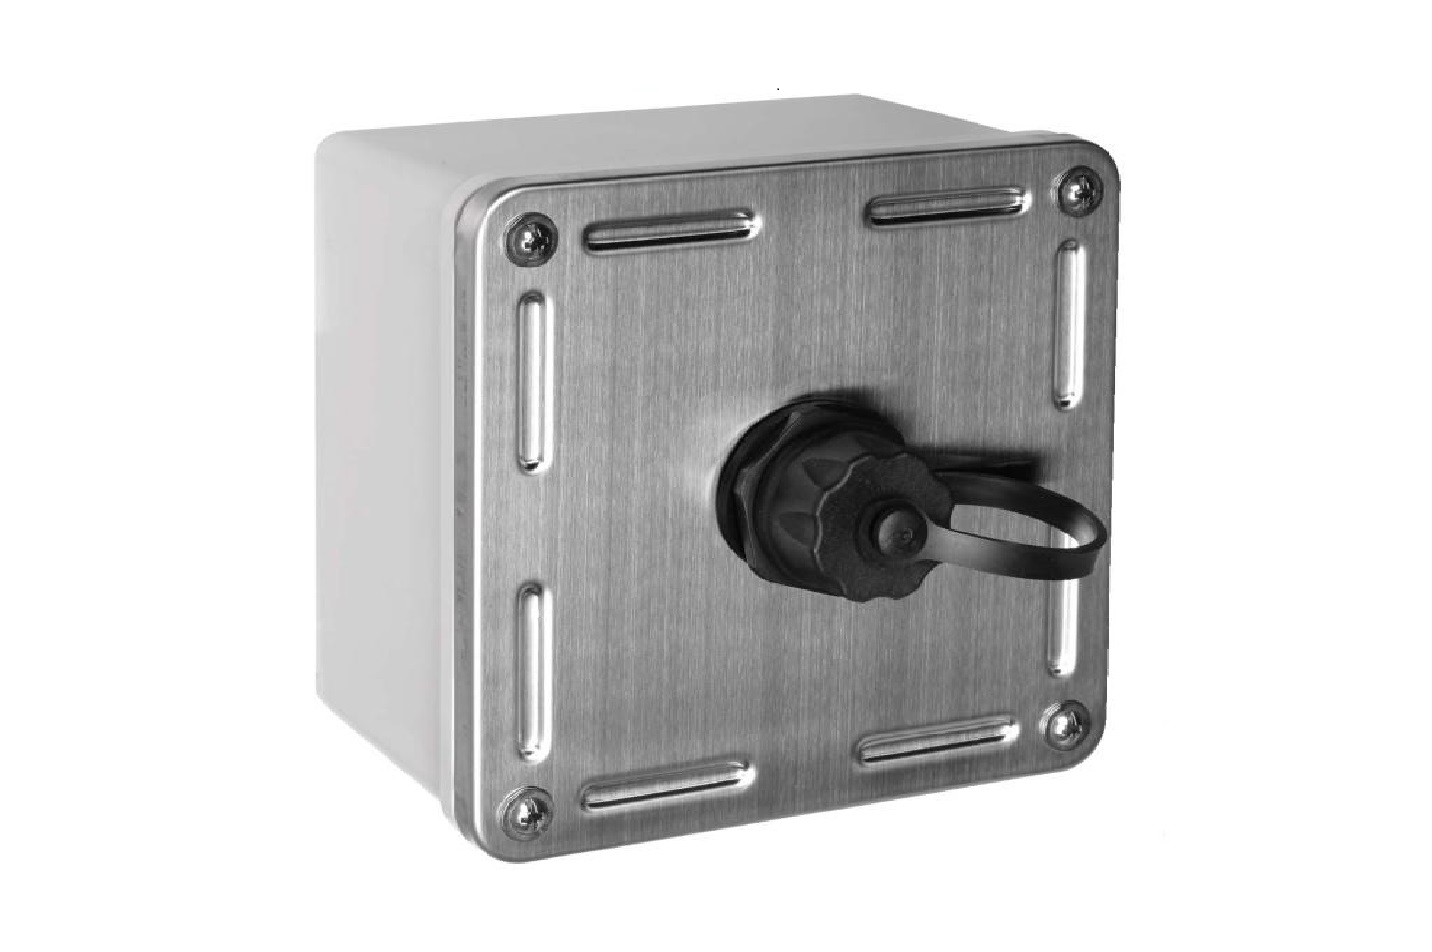 BC-12-021 Industrial IP 67 1xRJ45 STP Cat.6A outlet picture